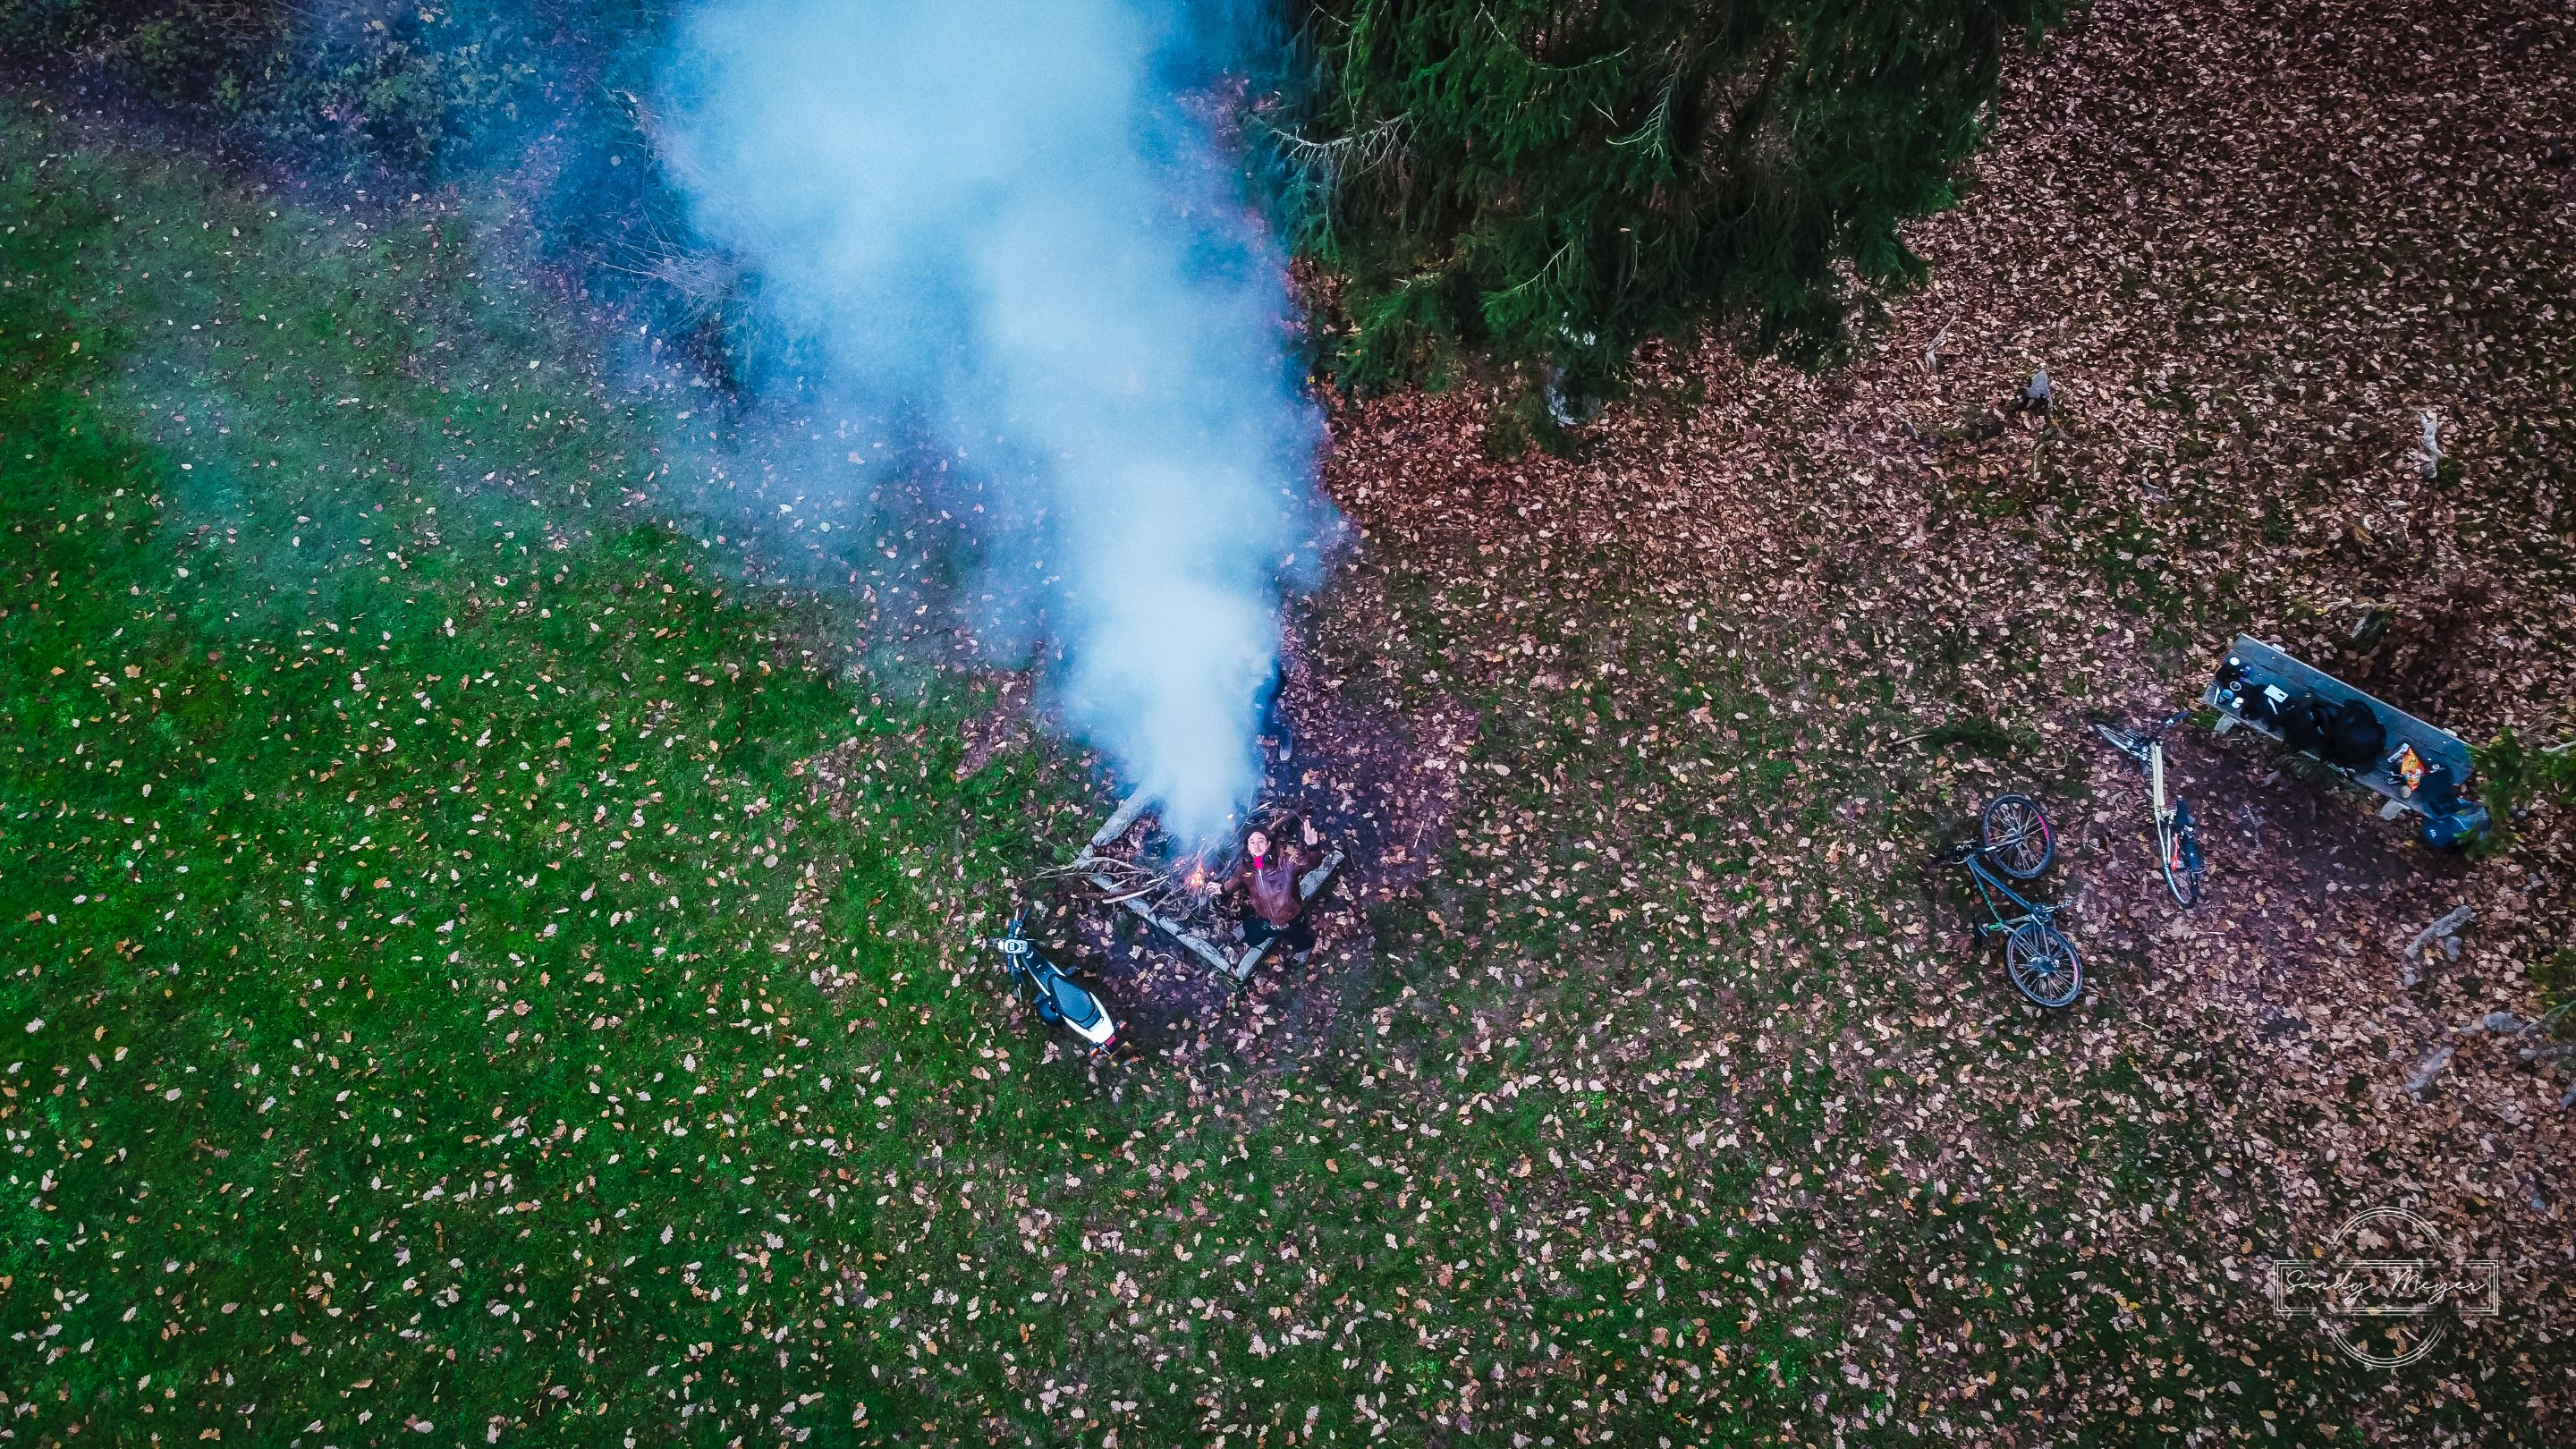 Drone Images 1-12.jpg